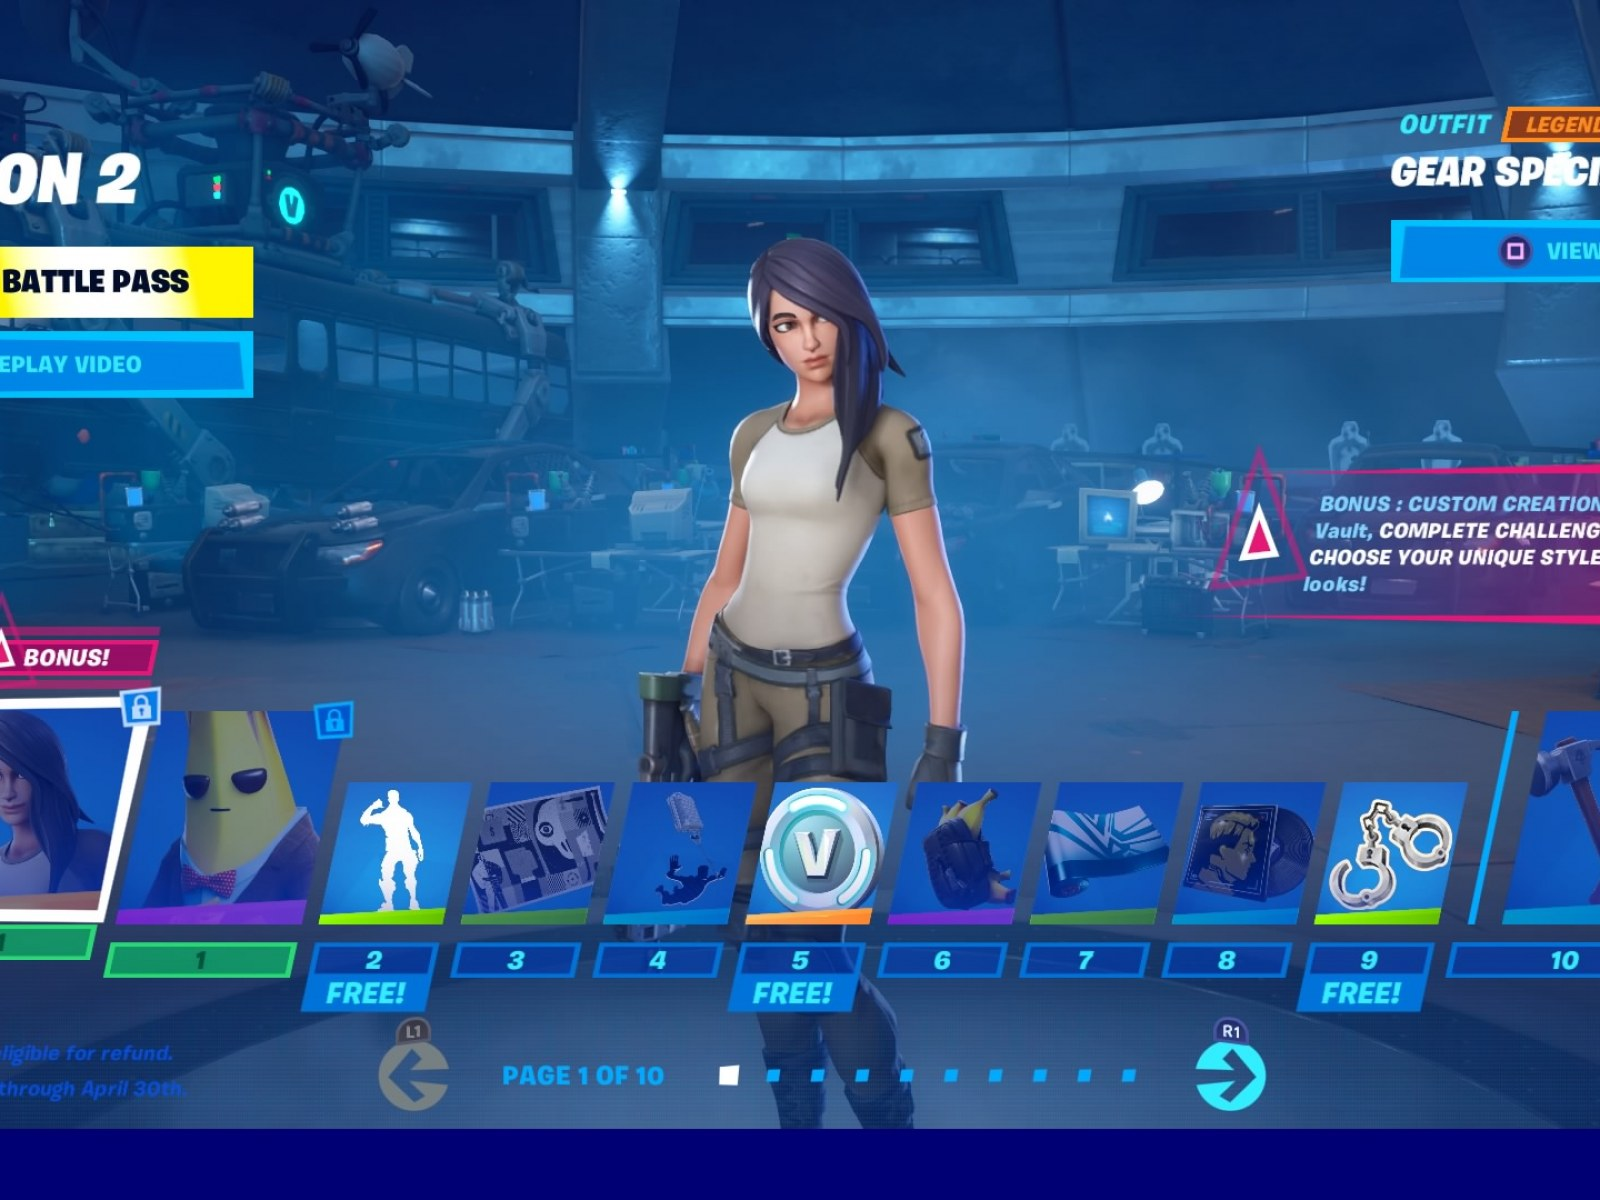 Fortnite Chapter 2 Season 2 Battle Pass Skins To Tier 100 Meowscles Midas More Fortnite chapter 2 season 1's new battle pass is a good one, in large part thanks to the big refresh epic's battle royale. fortnite chapter 2 season 2 battle